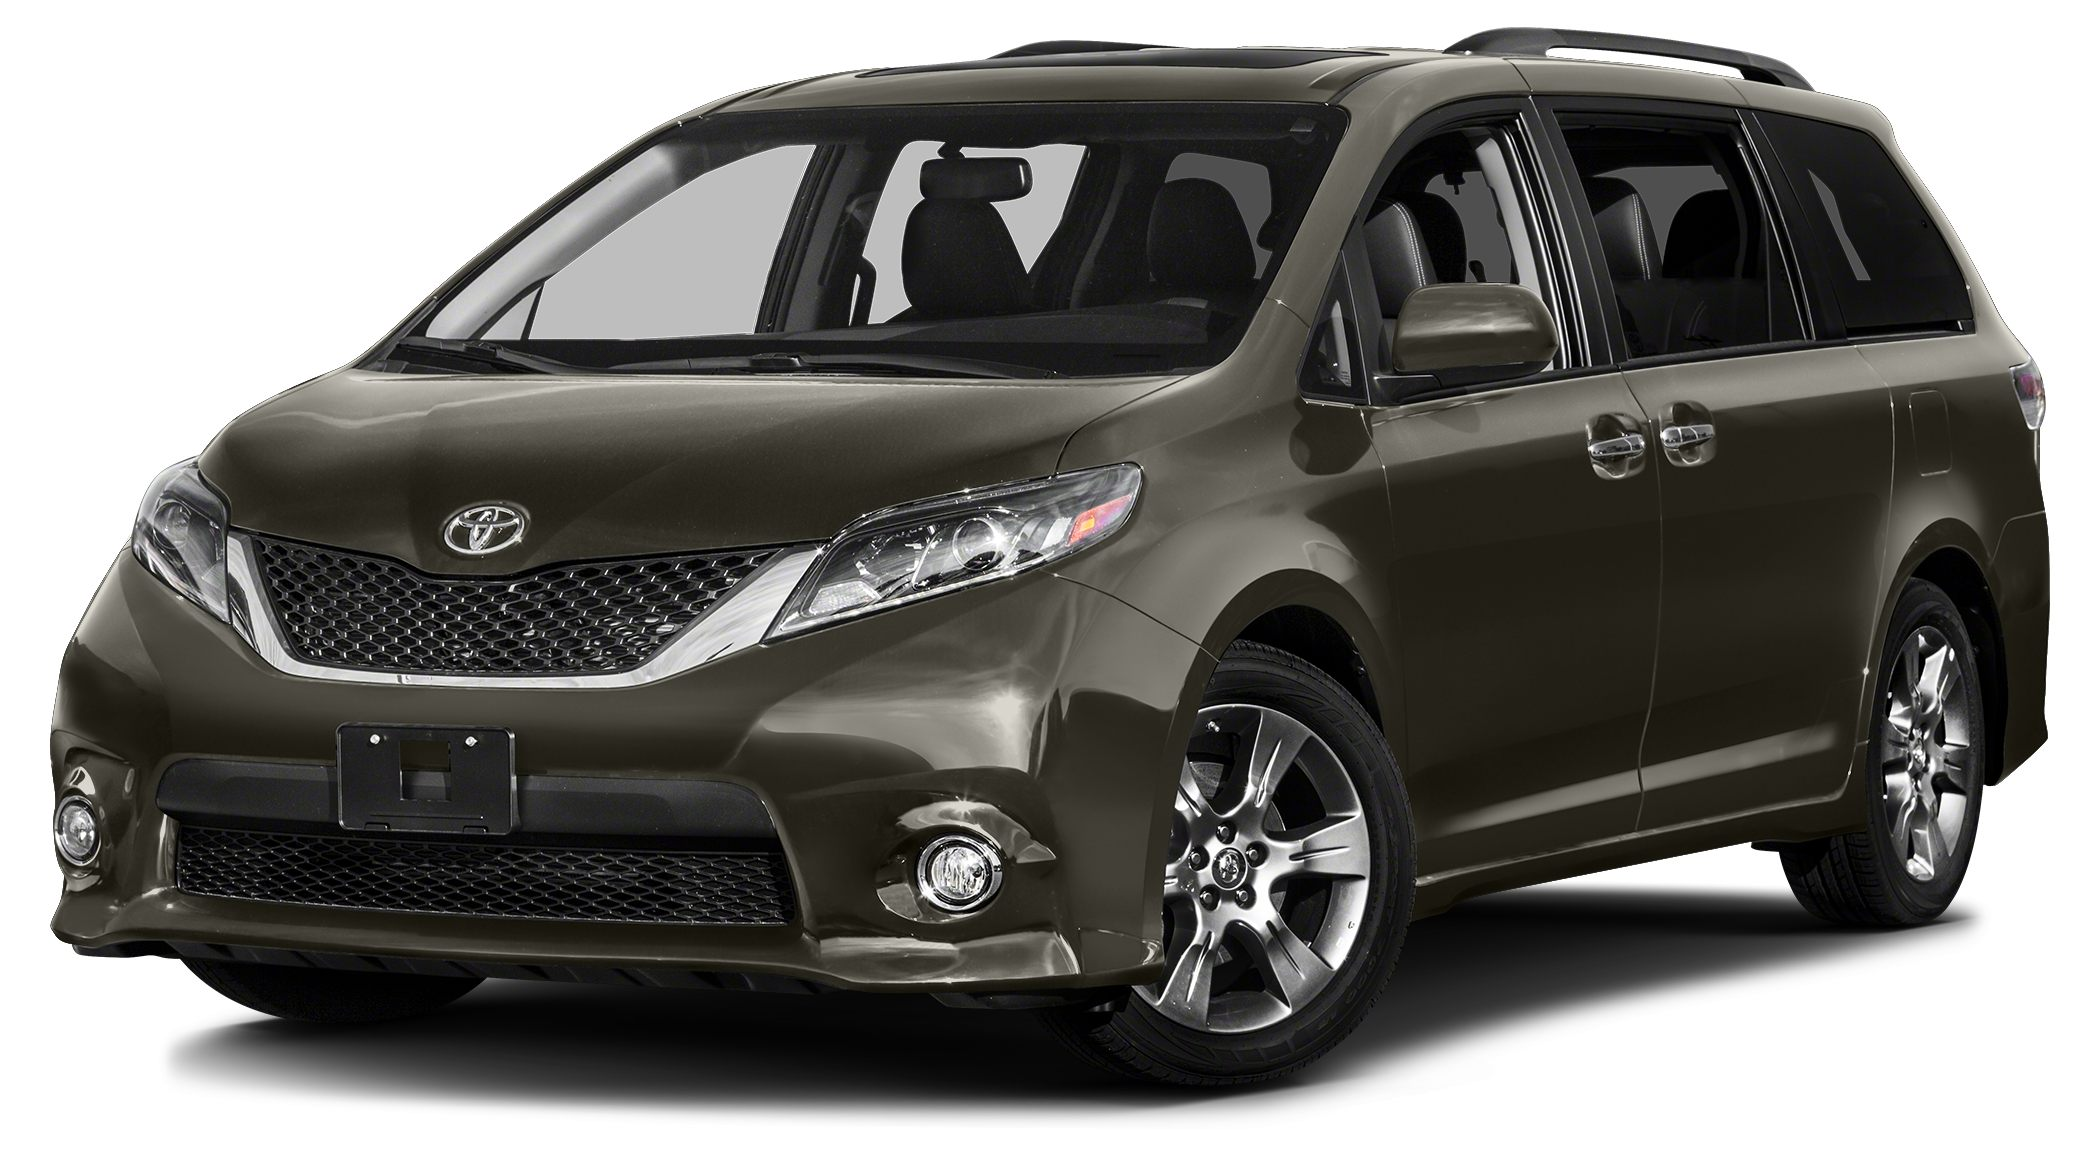 2015 Toyota Sienna SE Premium 8 Passenger SE Premium trim PRICED TO MOVE 500 below Kelley Blue B